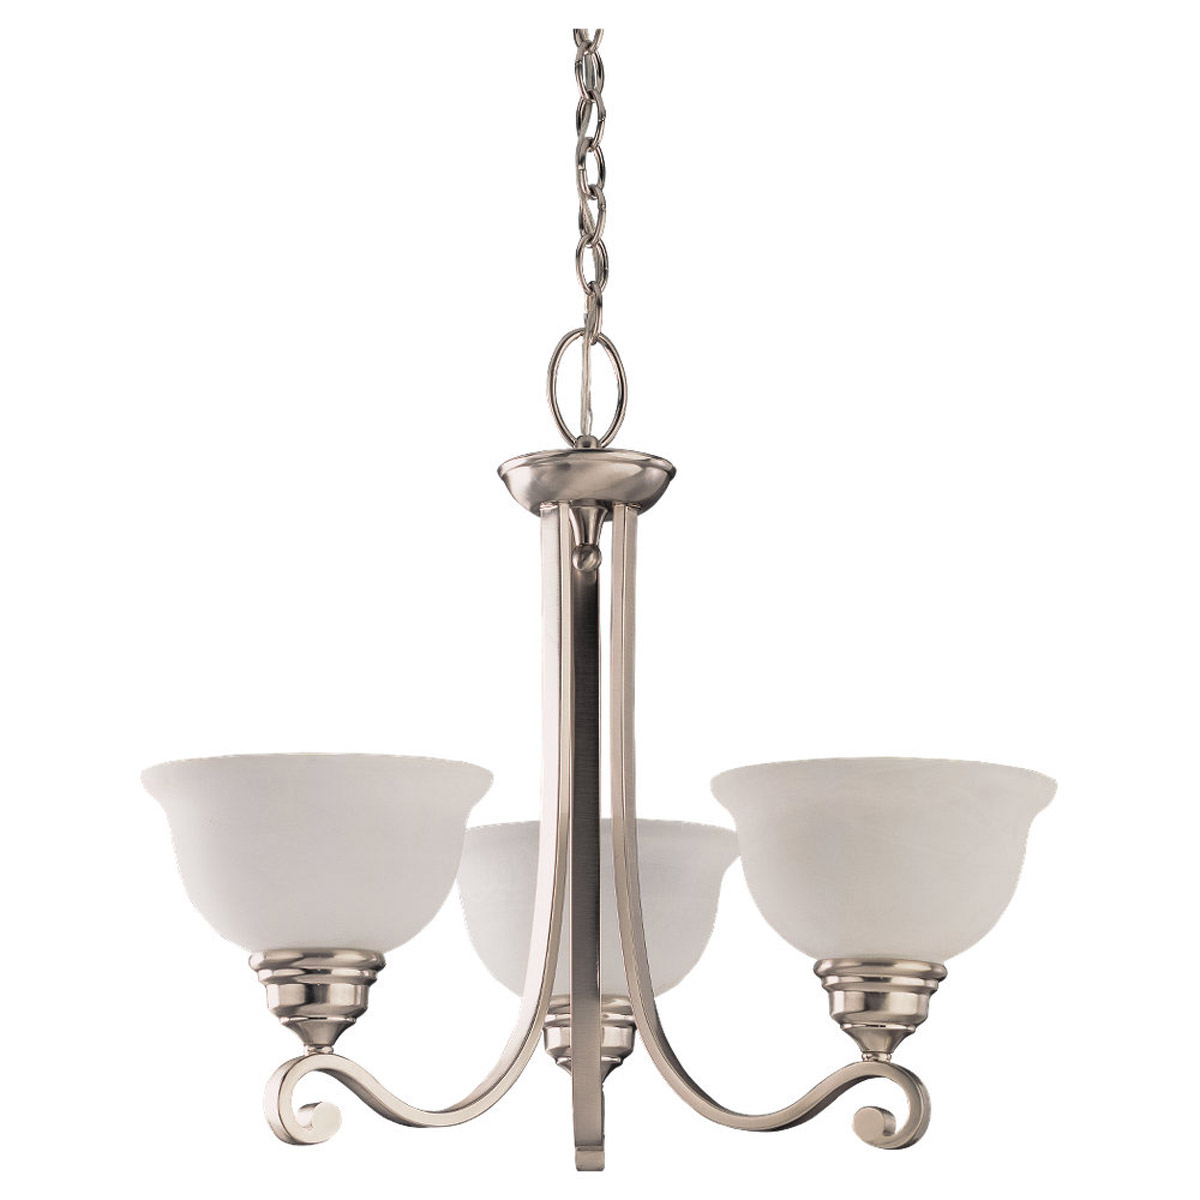 Sea Gull Lighting Serenity 3 Light Chandelier in Brushed Nickel 31190-962 photo